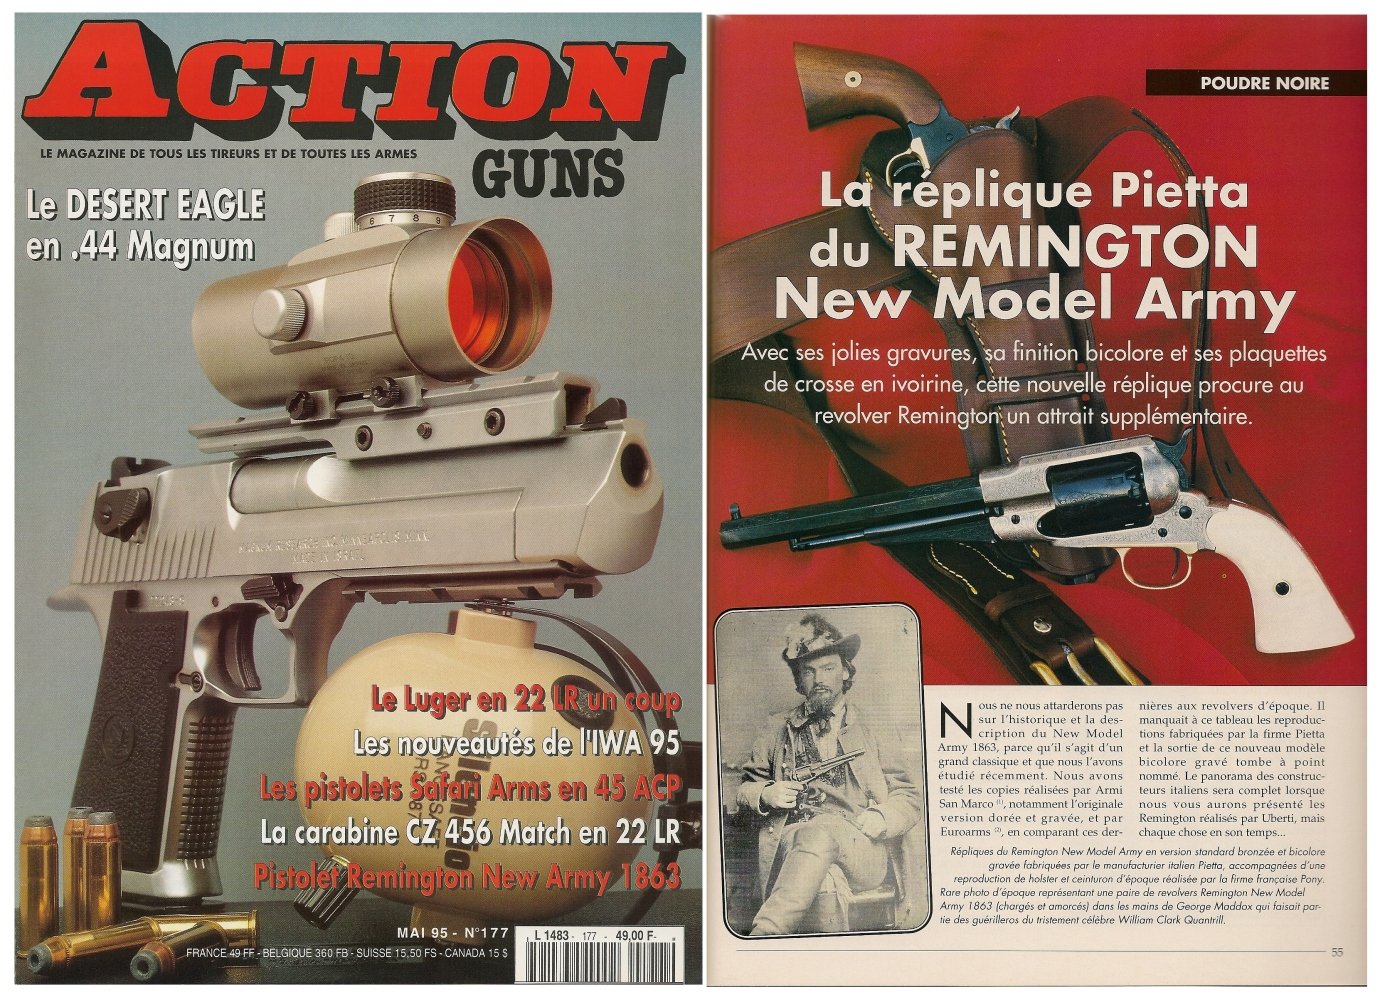 Le banc d'essai du revolver Remington New Model Army « Old Silver » a été publié sur 4 pages dans le magazine Action Guns n° 177 (mai 1995).